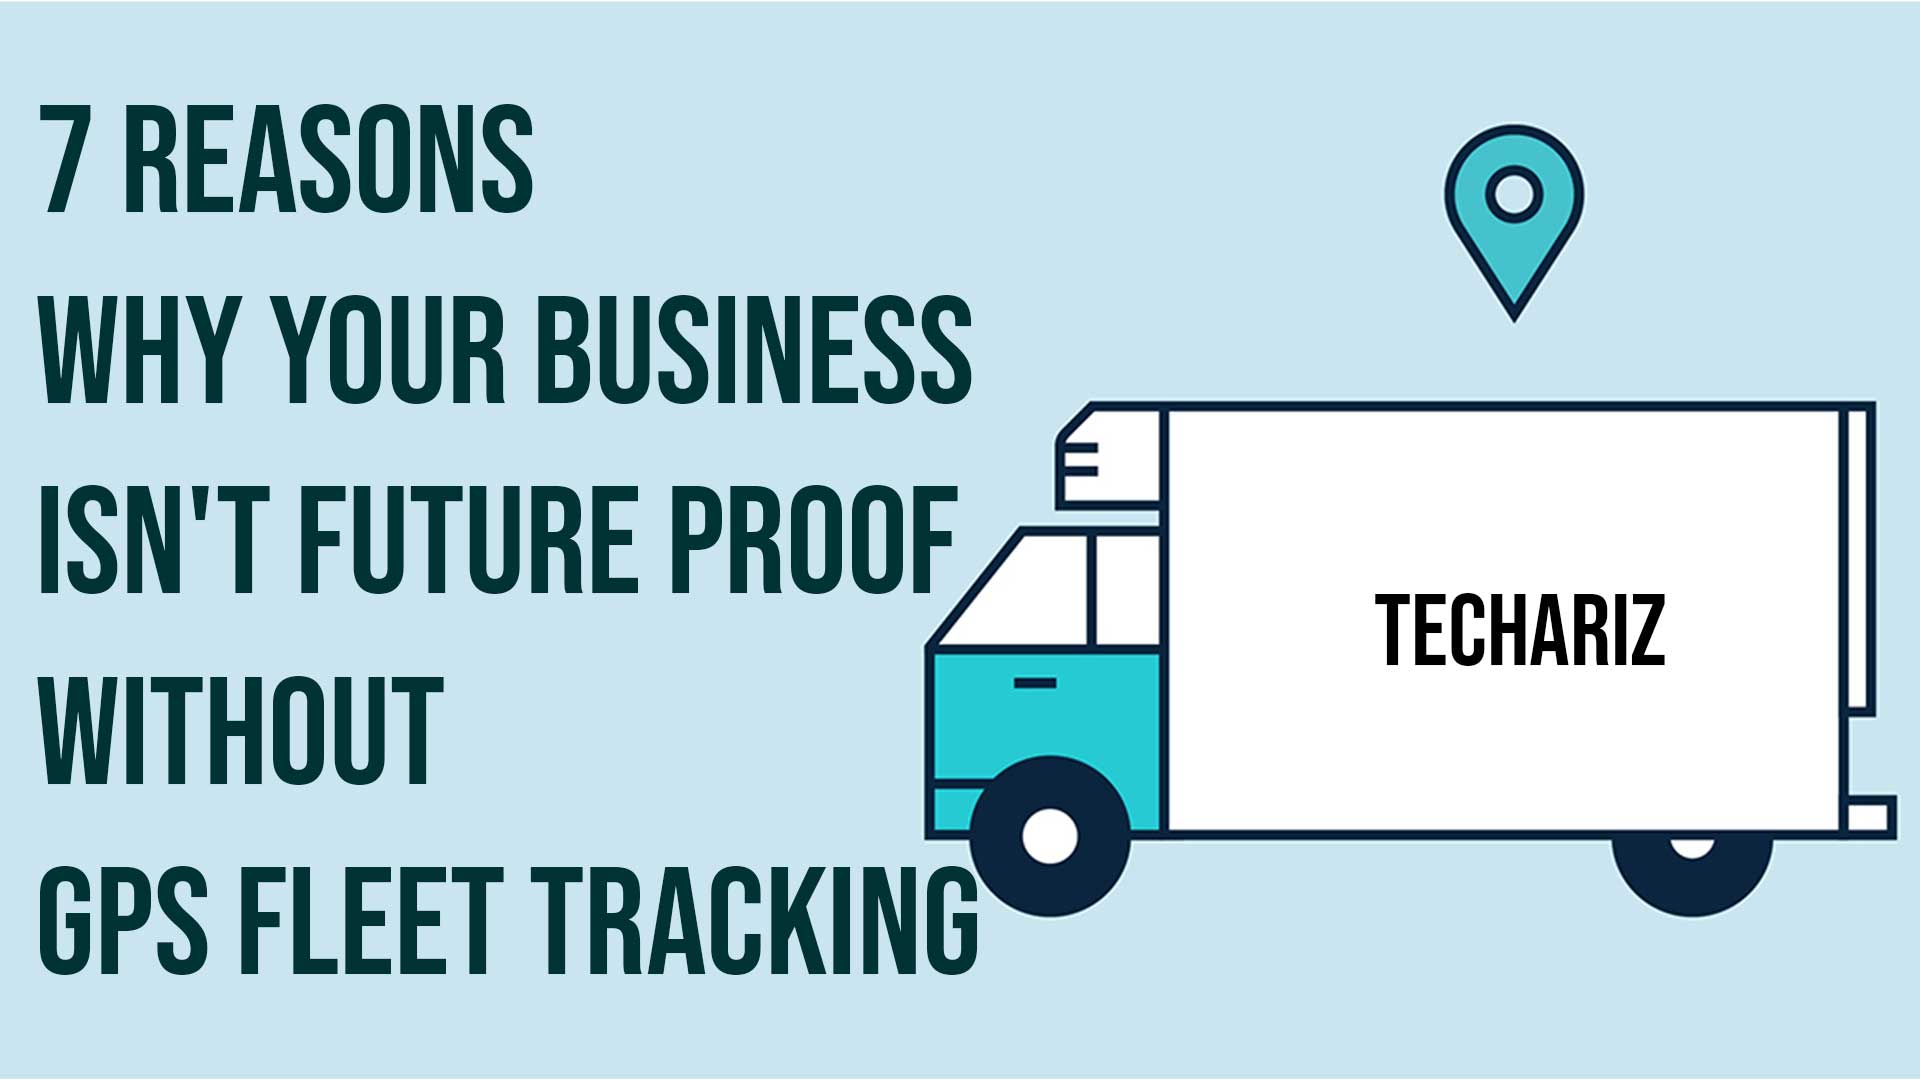 7 Reasons Why Your Business Isnt Future Proof Without GPS Fleet Tracking